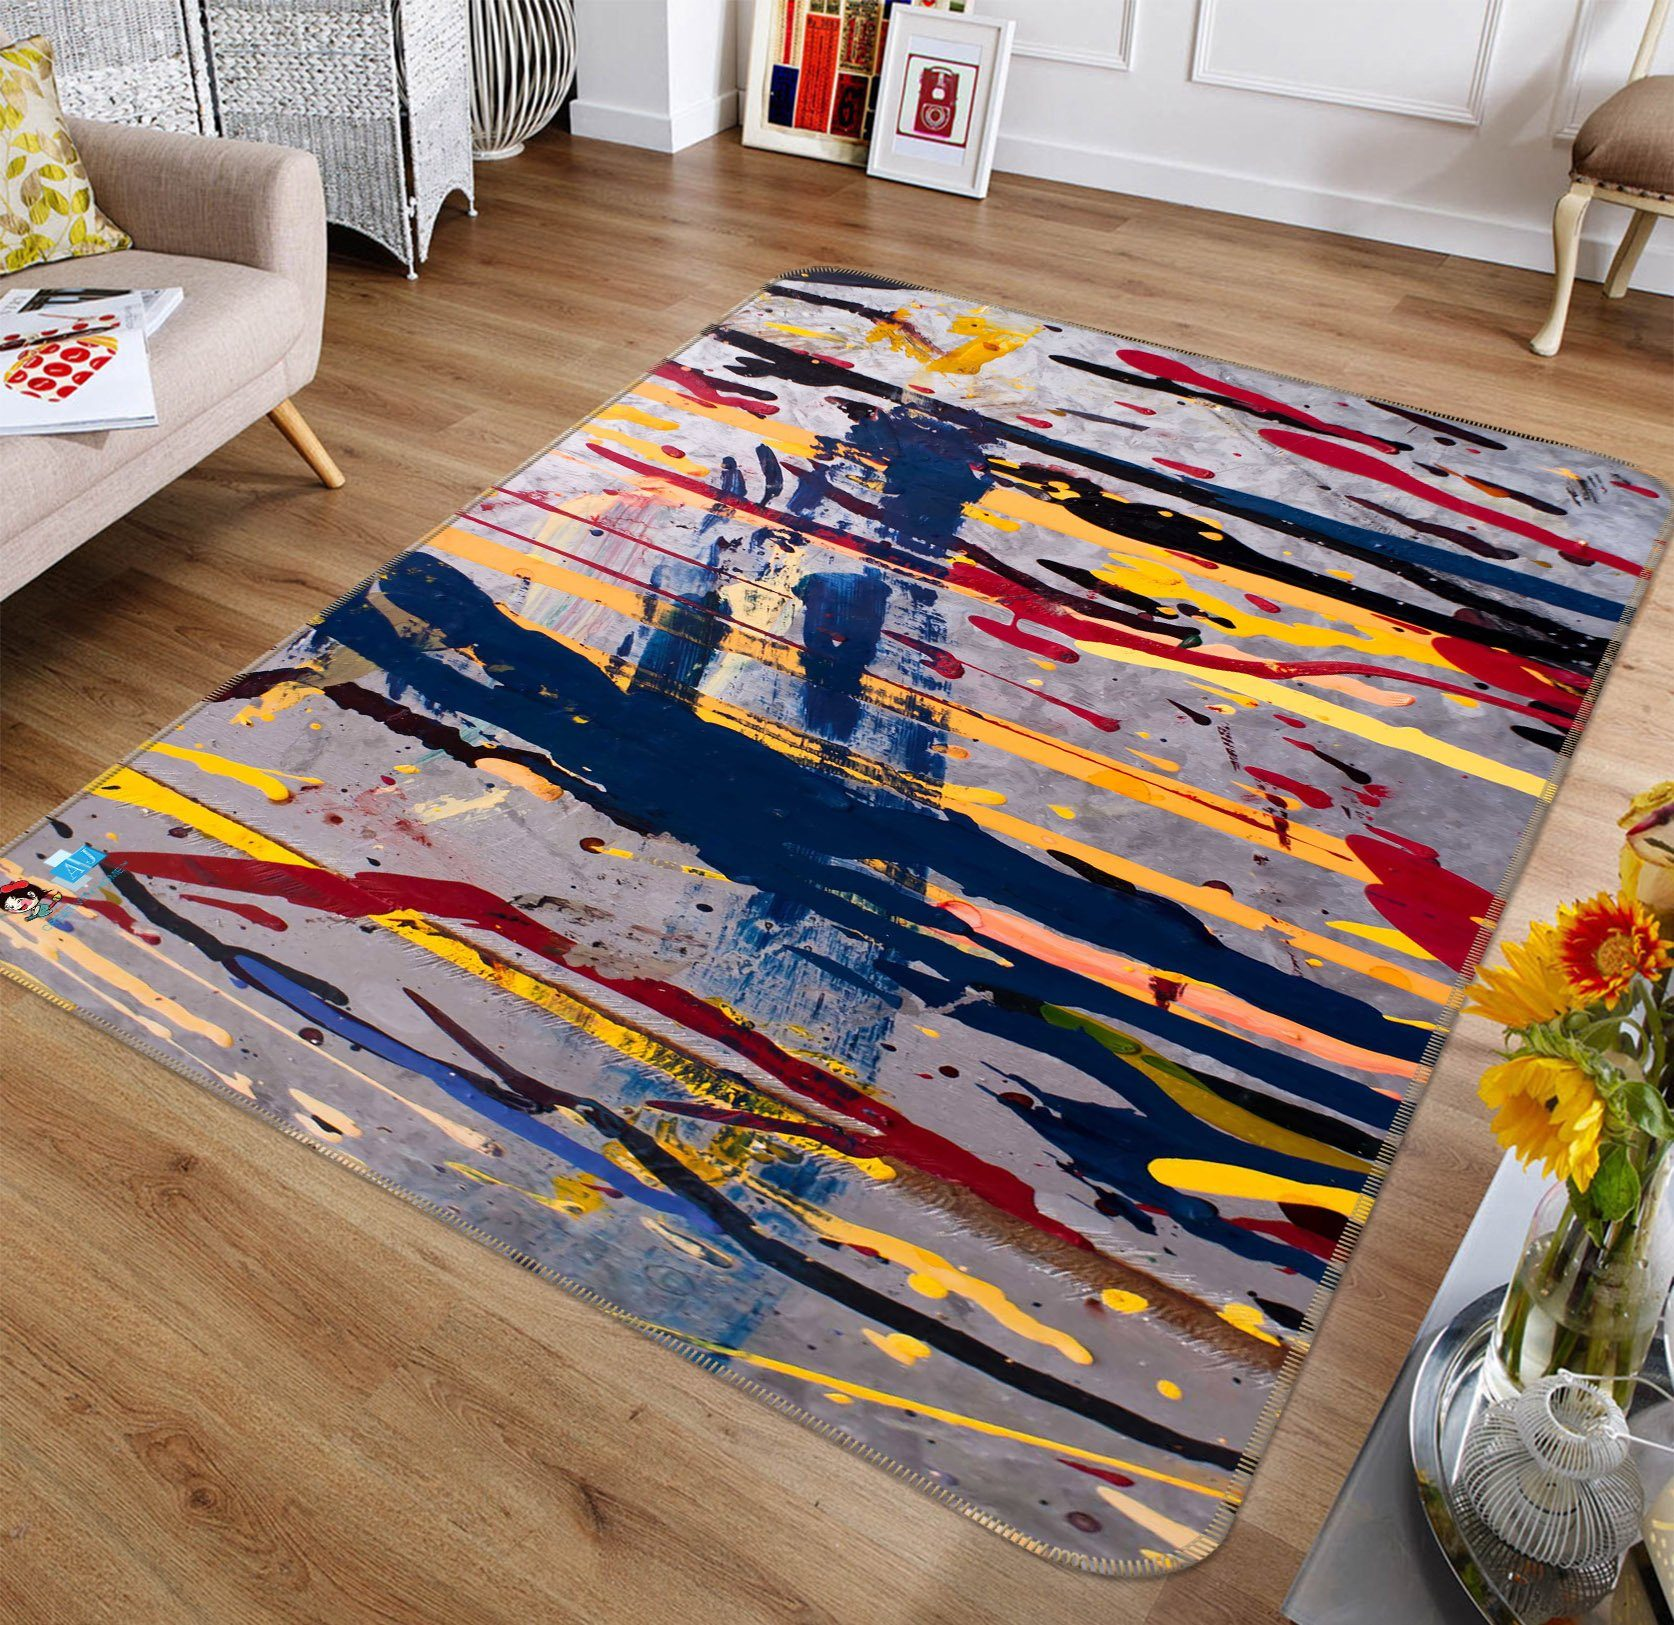 3D Random Color Lines 193 Non Slip Rug Mat Mat AJ Creativity Home